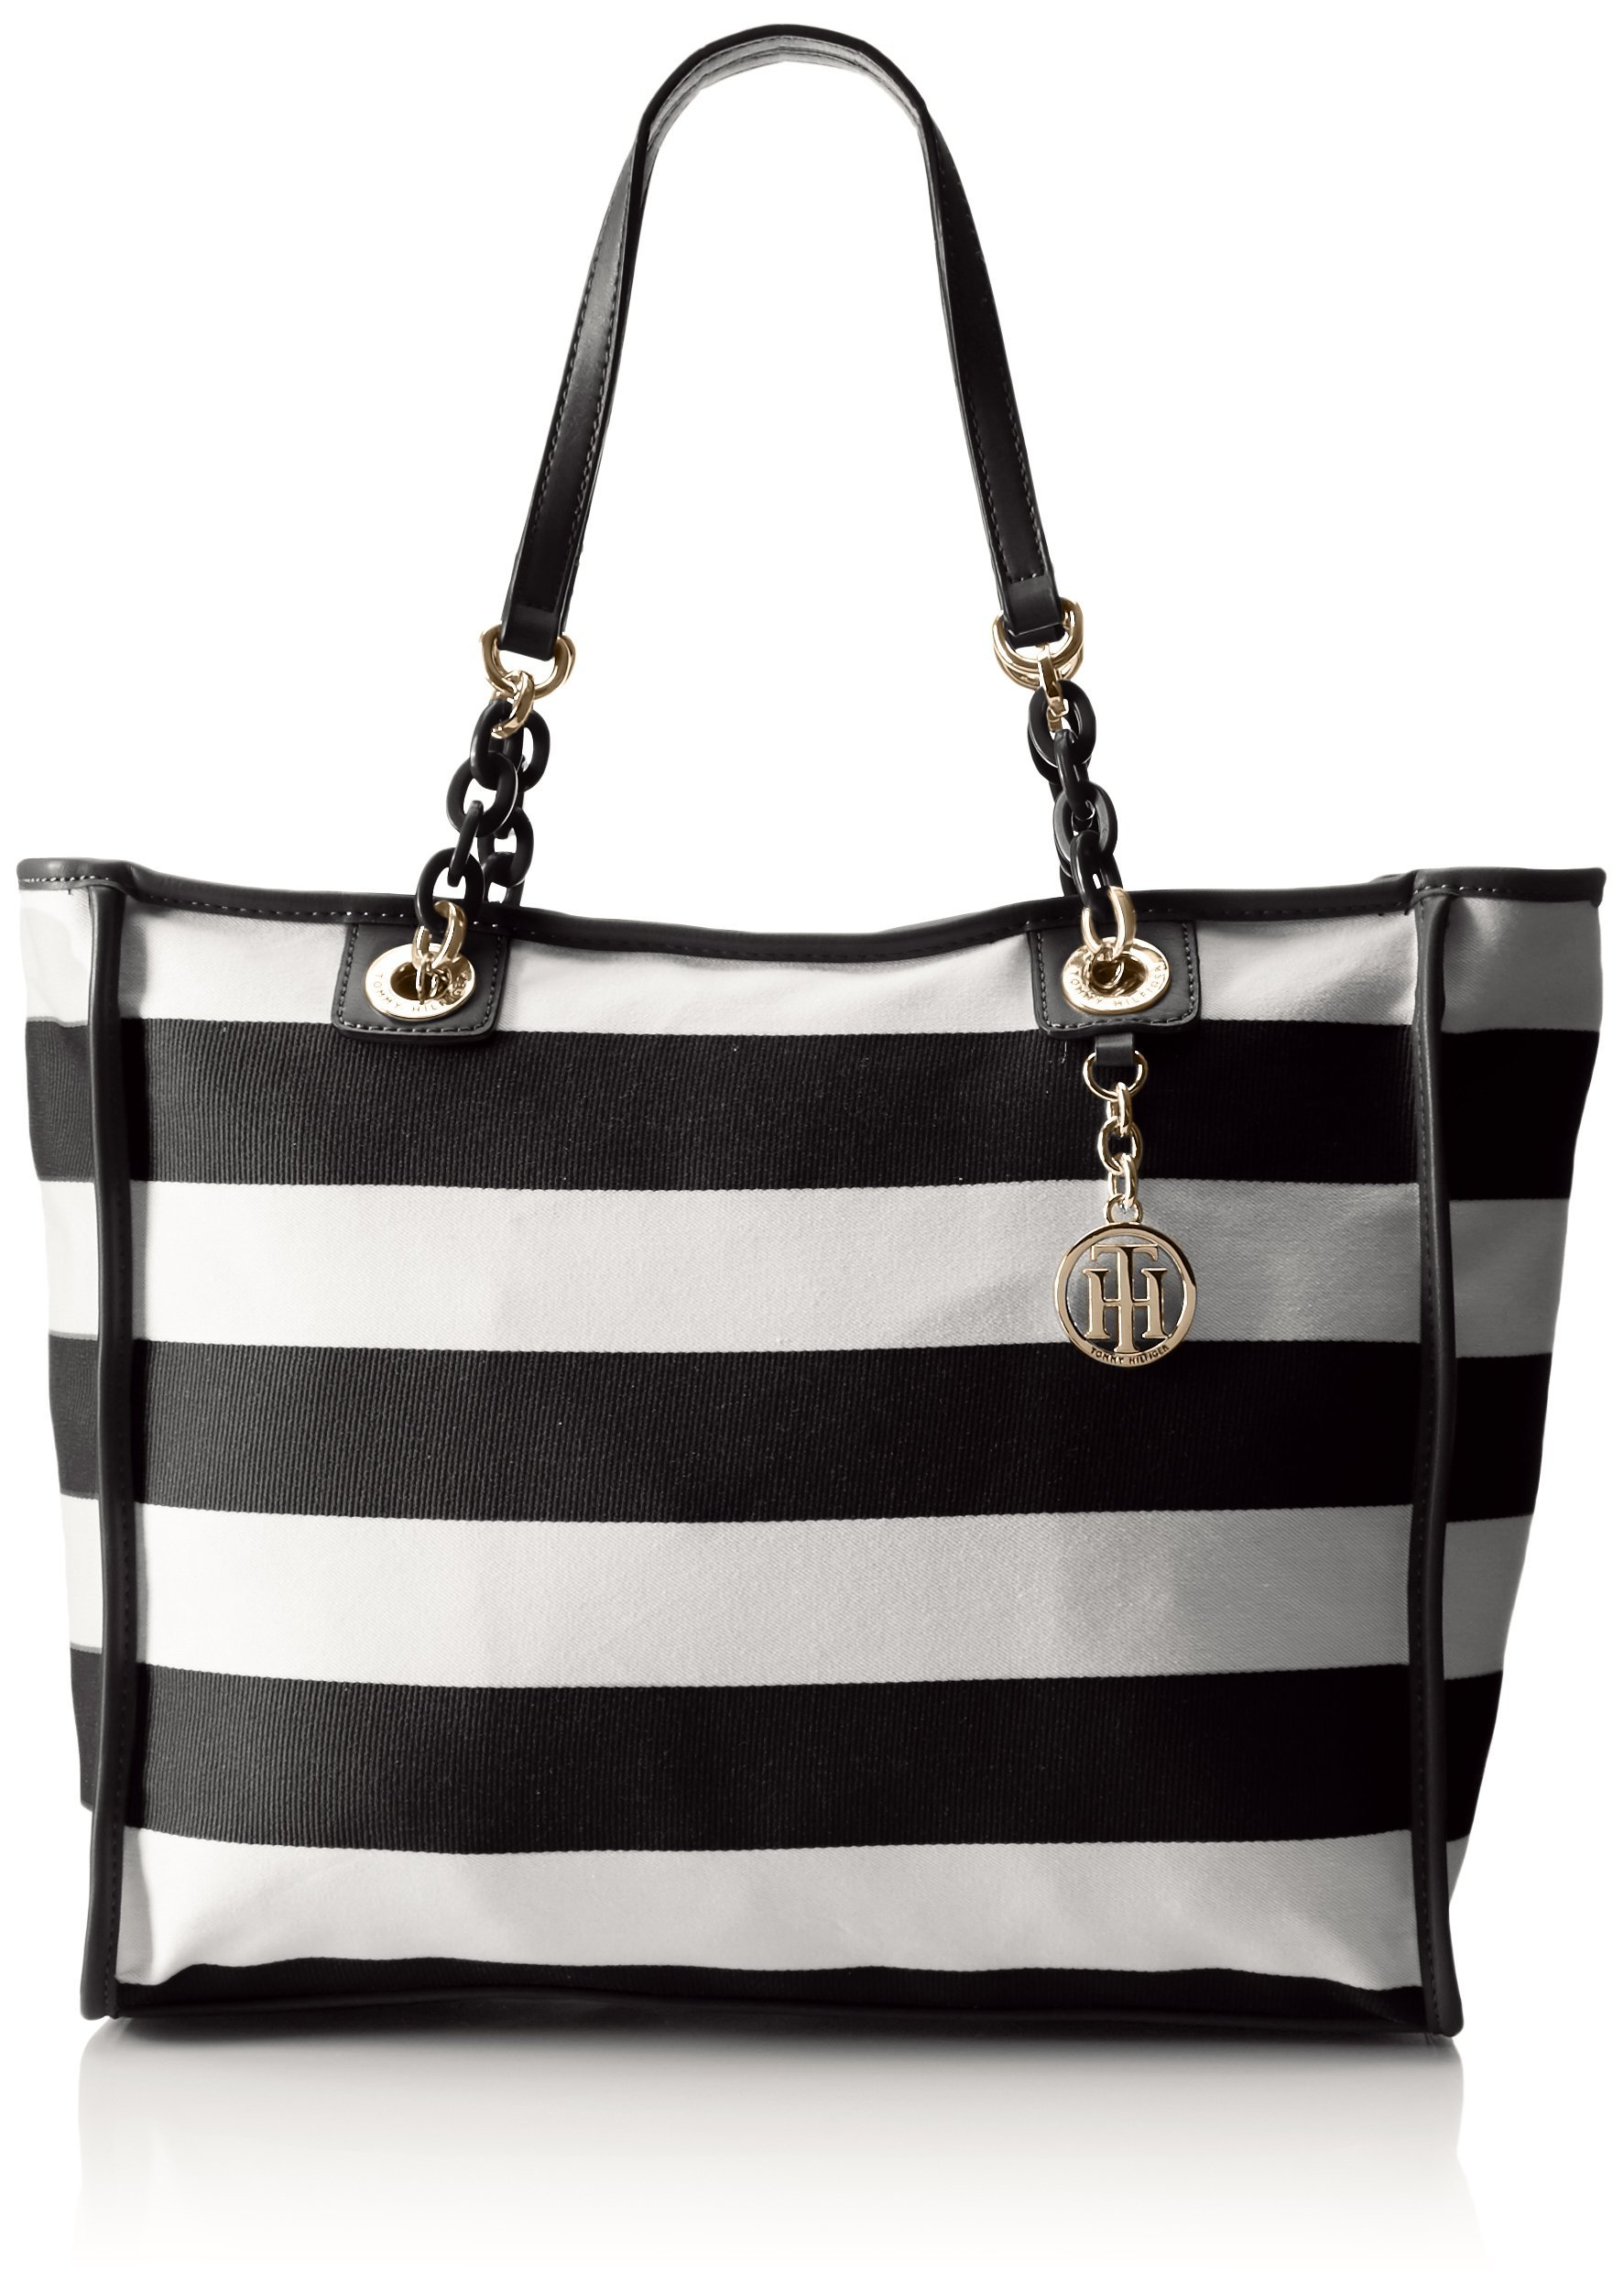 Tommy Hilfiger Tote Bag for Women Adrianna, Black/White